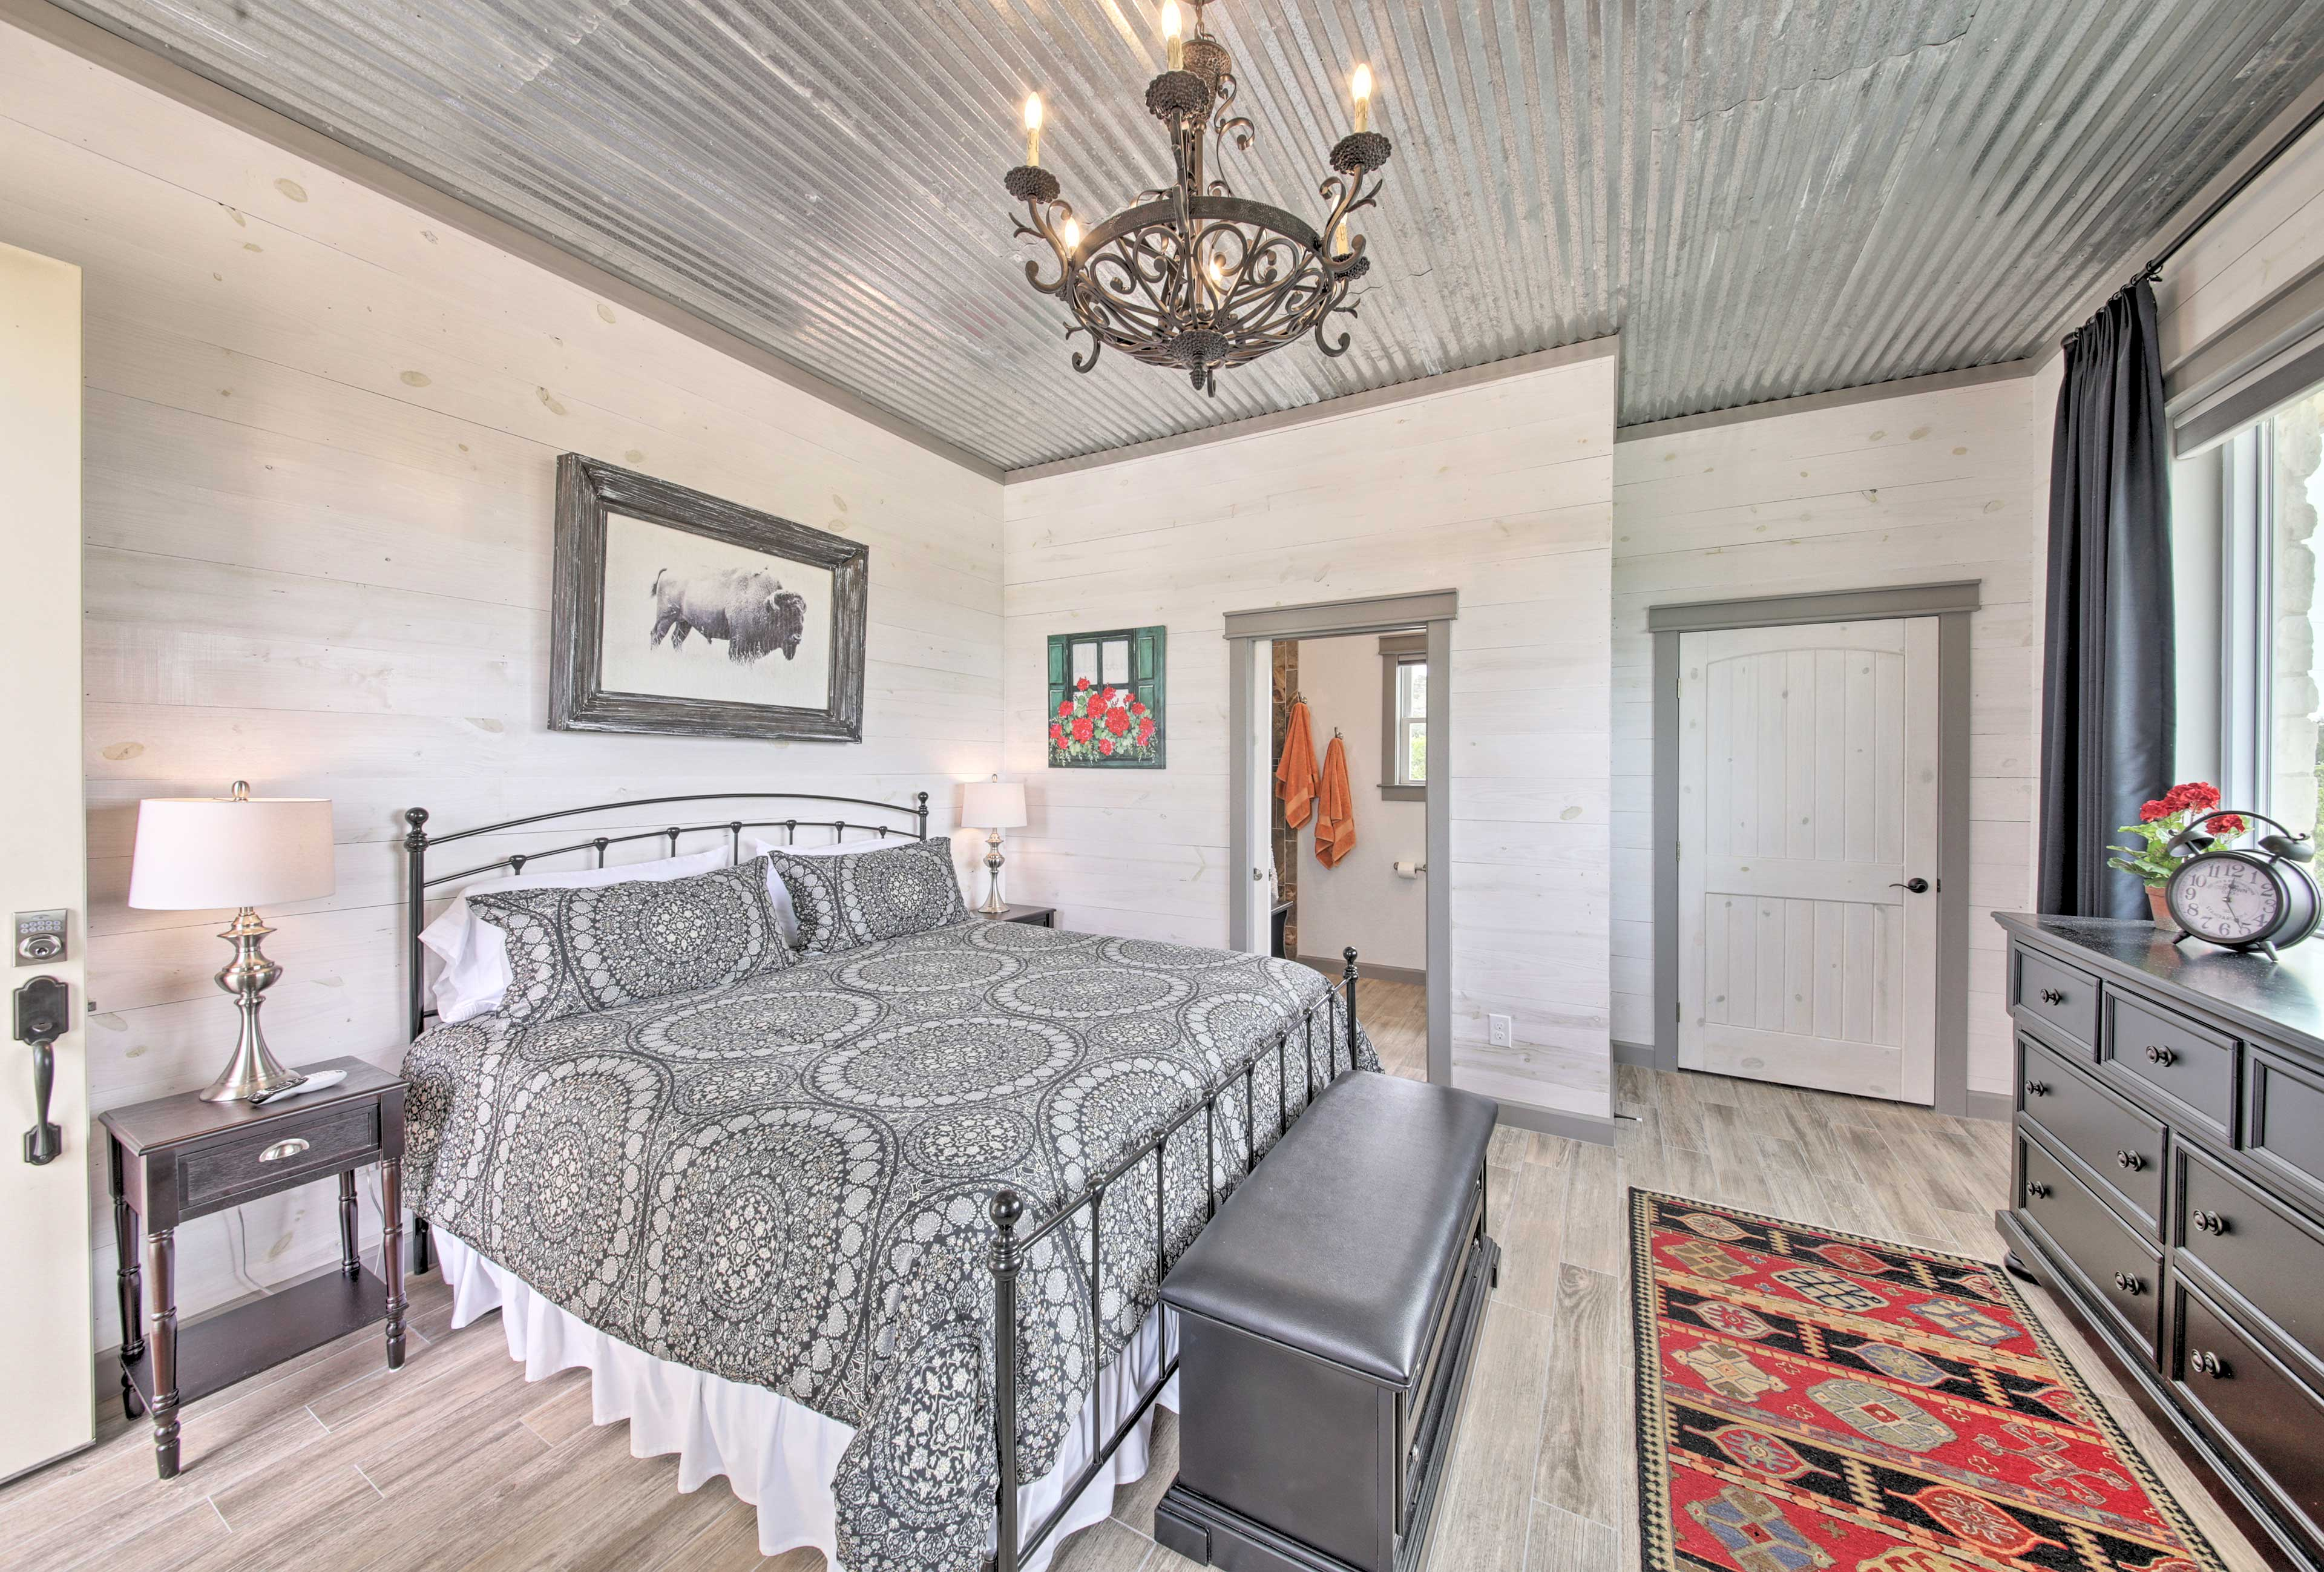 The casita features a king bed for 2.